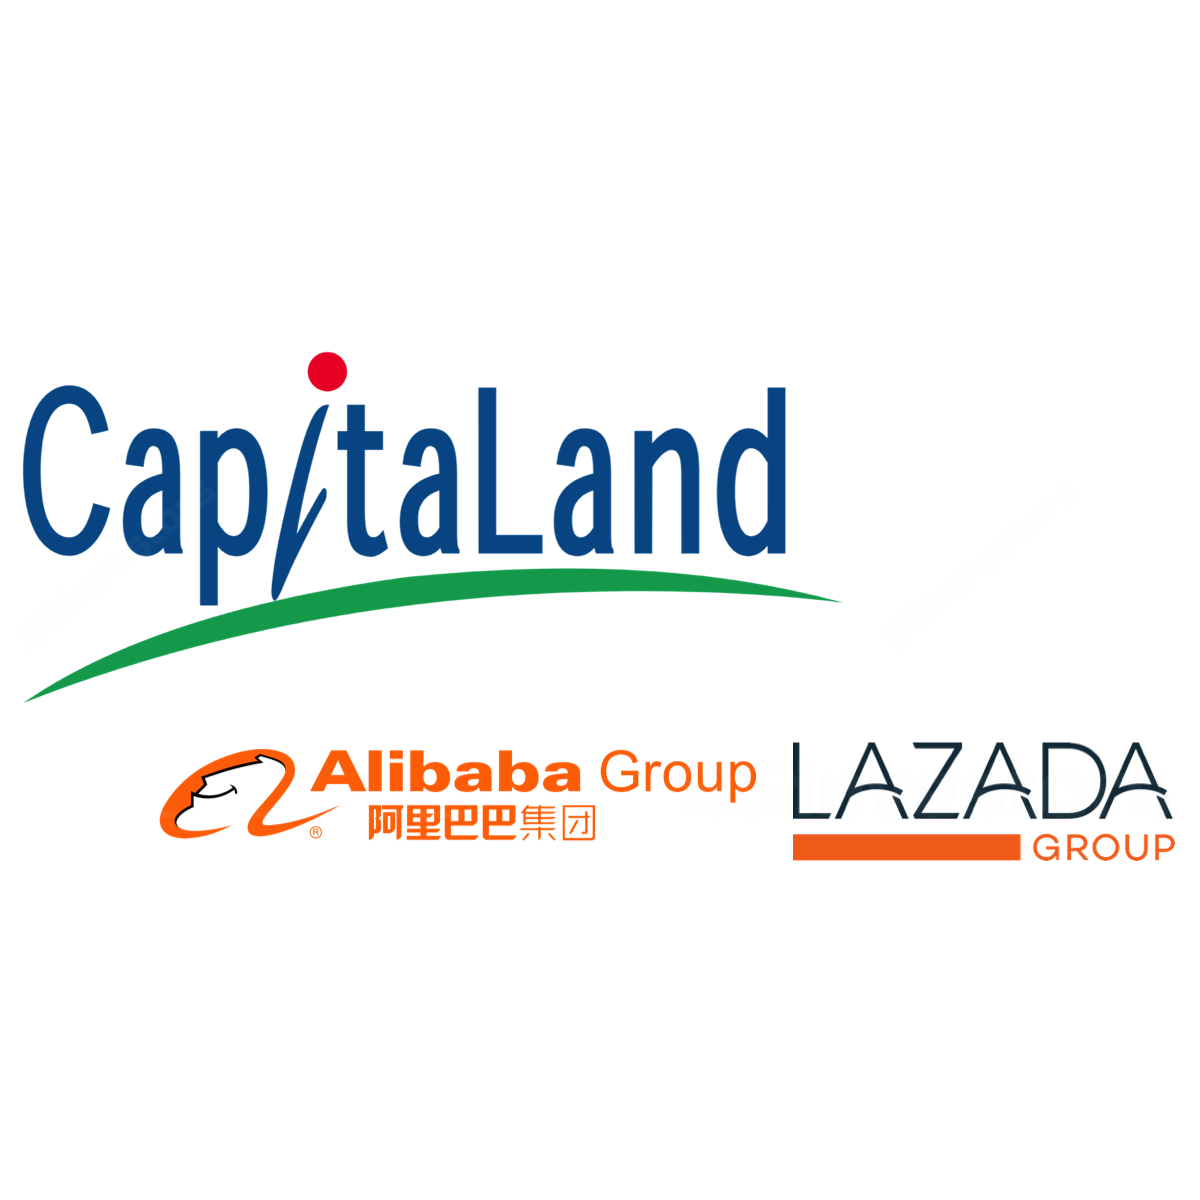 CapitaLand (CAPL SP) - DBS Vickers 2017-08-25: Start Of A Journey With Alibaba And Lazada